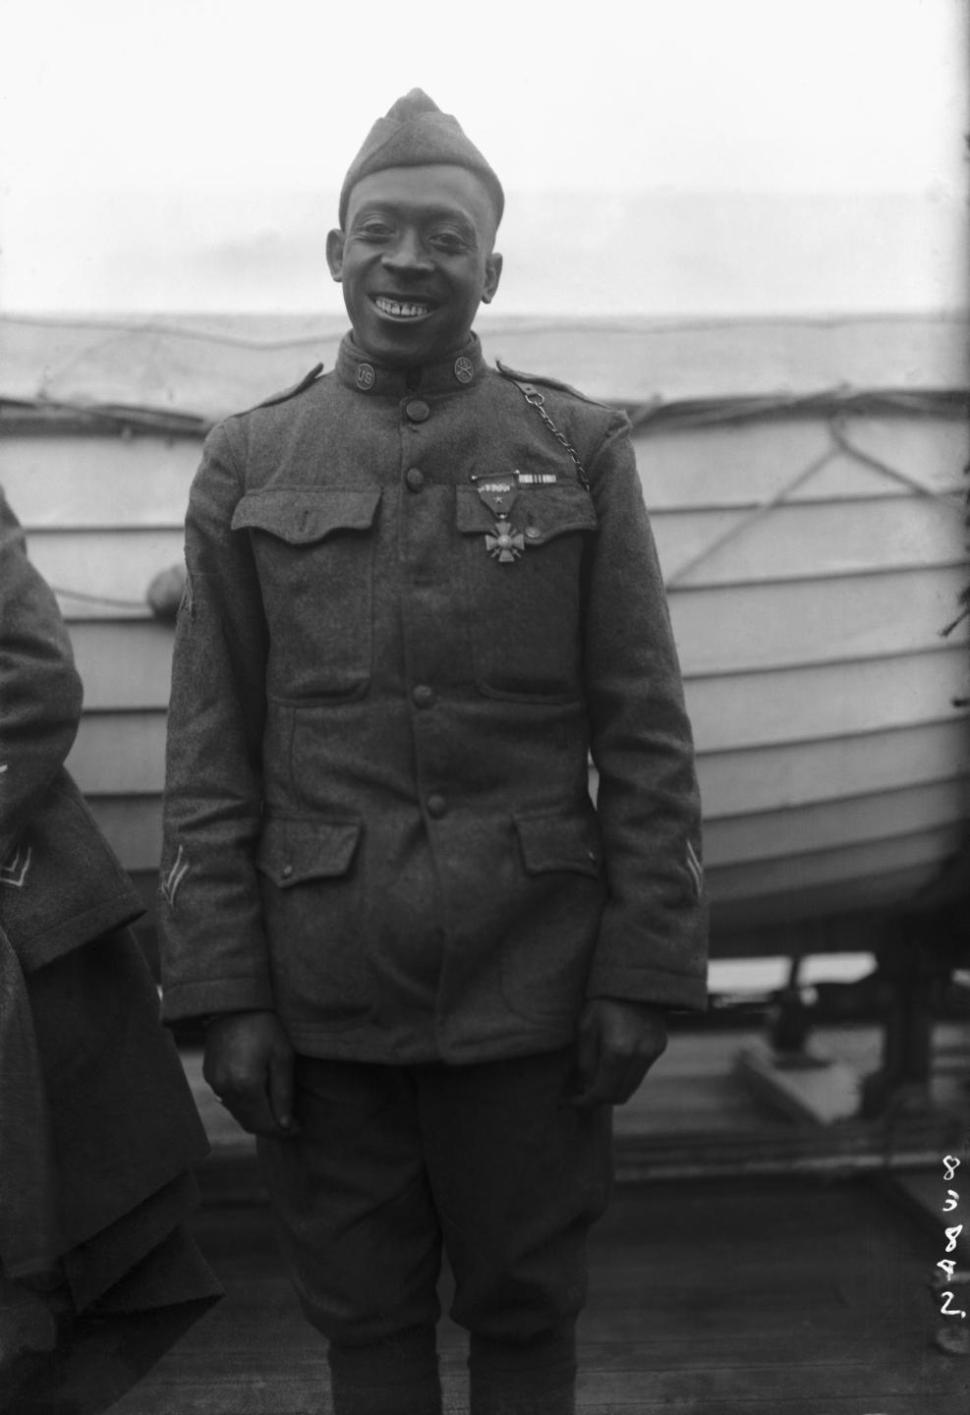 Sgt. Henry Johnson of the 369th Infantry Regiment was awarded the French Croix de Guerre for bravery during an outnumbered battle with German soldiers, Feb. 12, 1919. (Photo: Public Domain   source: army.mil  )